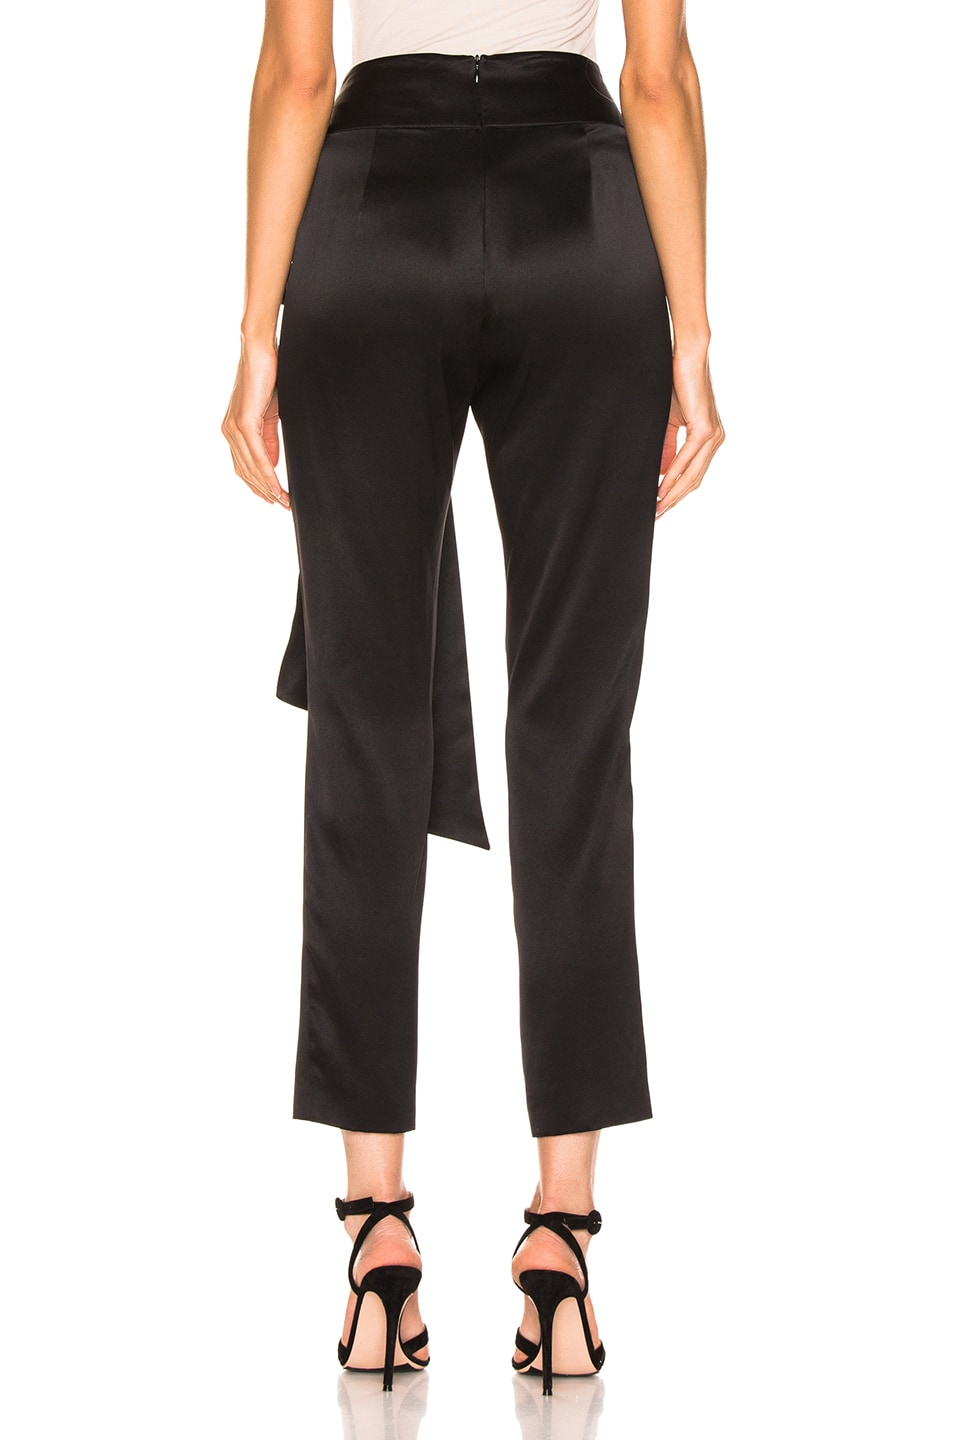 Image 3 of Michelle Mason Pleat Pant With Tie in Black